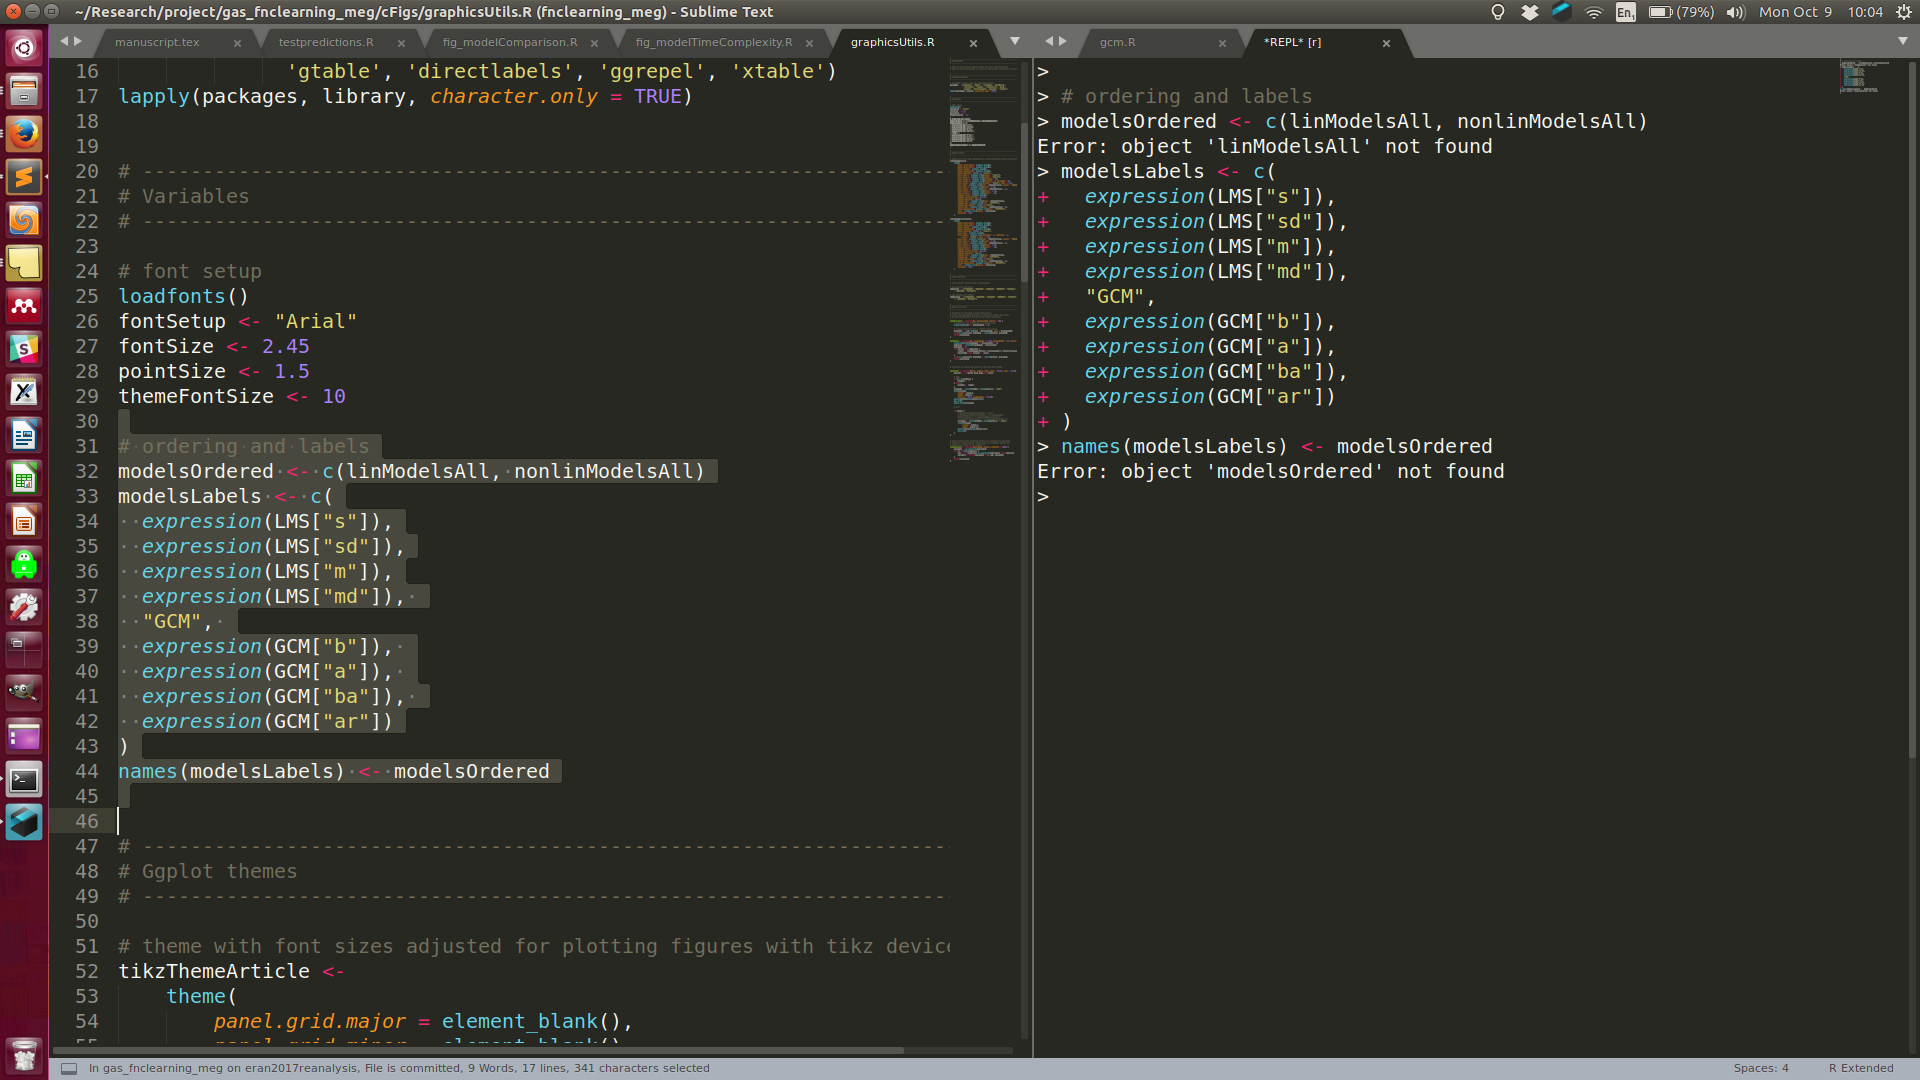 Sublime text 3 editor interface